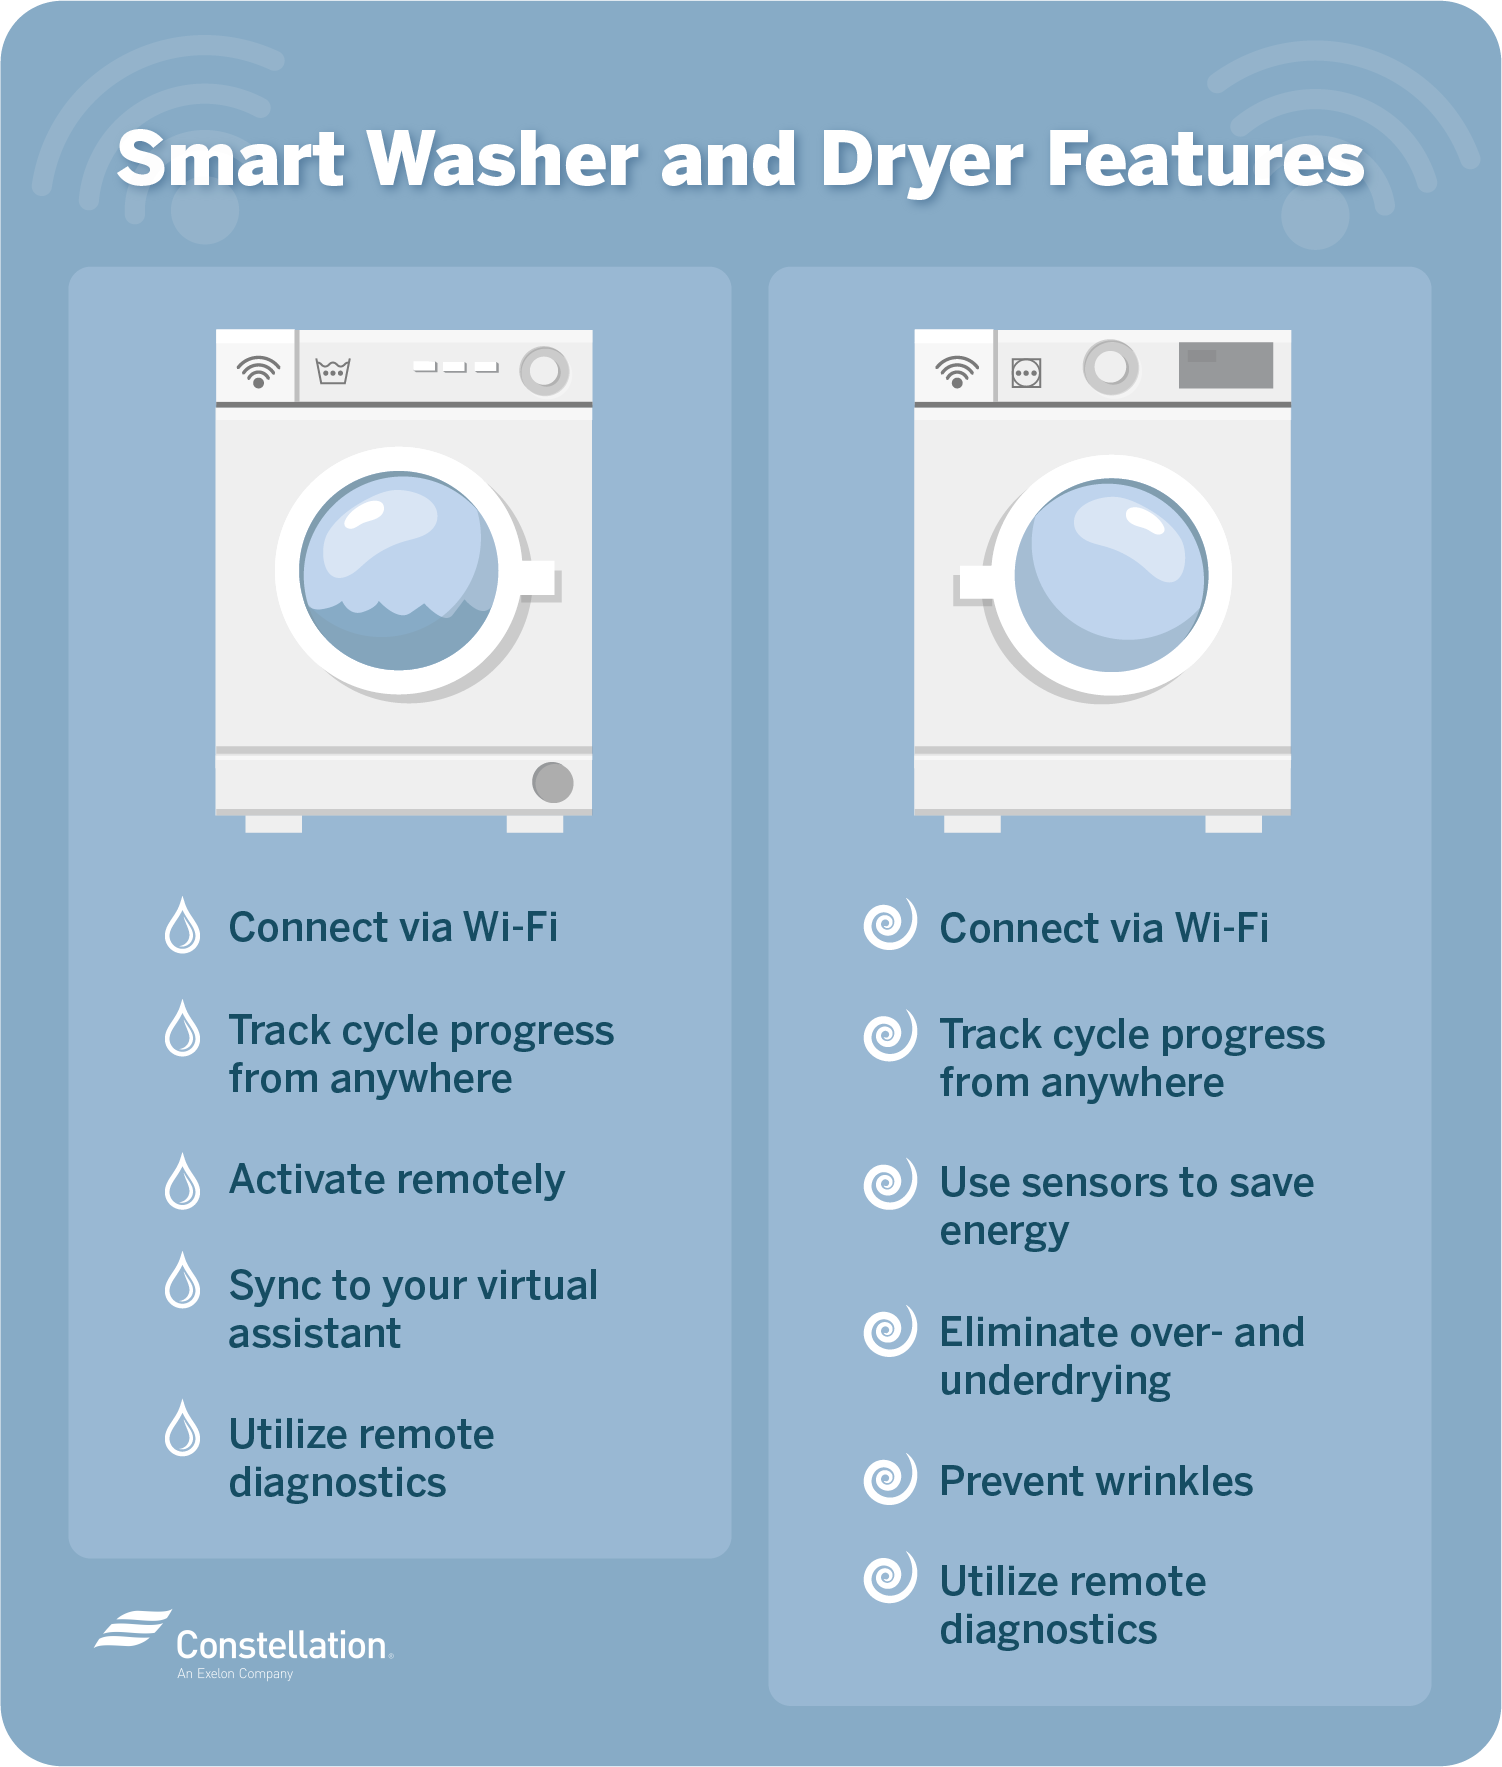 Smart washer and dryer features